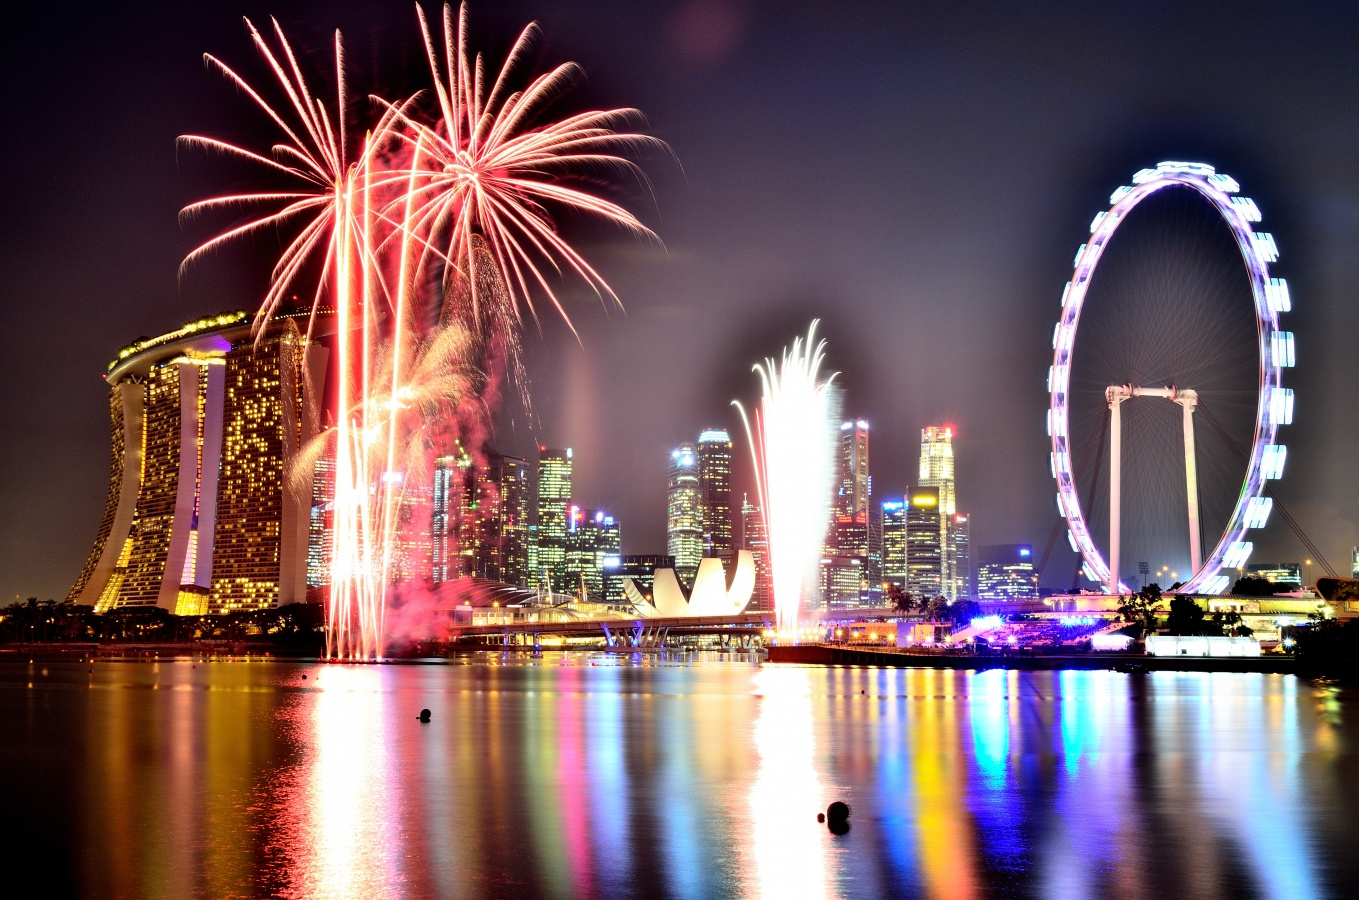 ndp fireworks bay east gardens the wacky duo singapore singapore blue golden hour long exposure photos page india